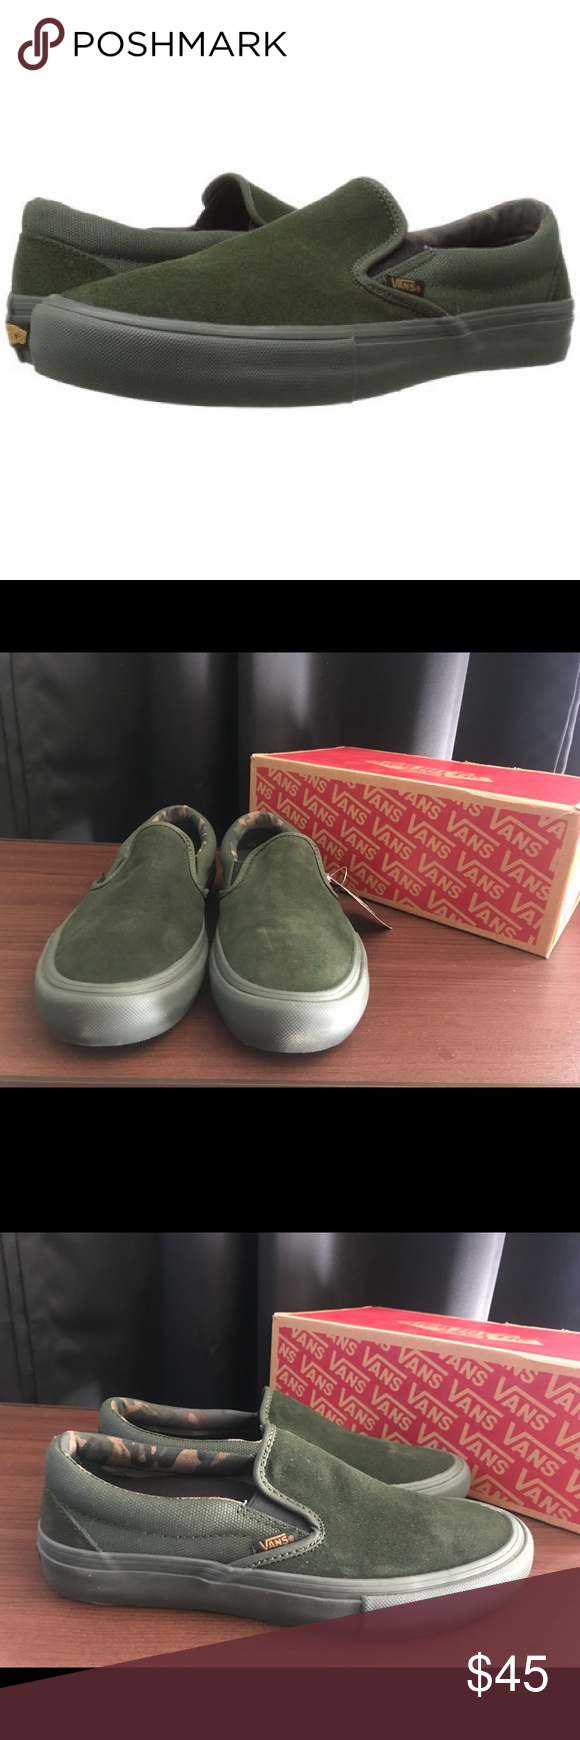 847b16ee2bdcd Vans Slip-On Pro Vans Slip-On Pro Camo/Rosin/Green Shoes are Unisex, the  box has the Mens size on it. Vans Shoes